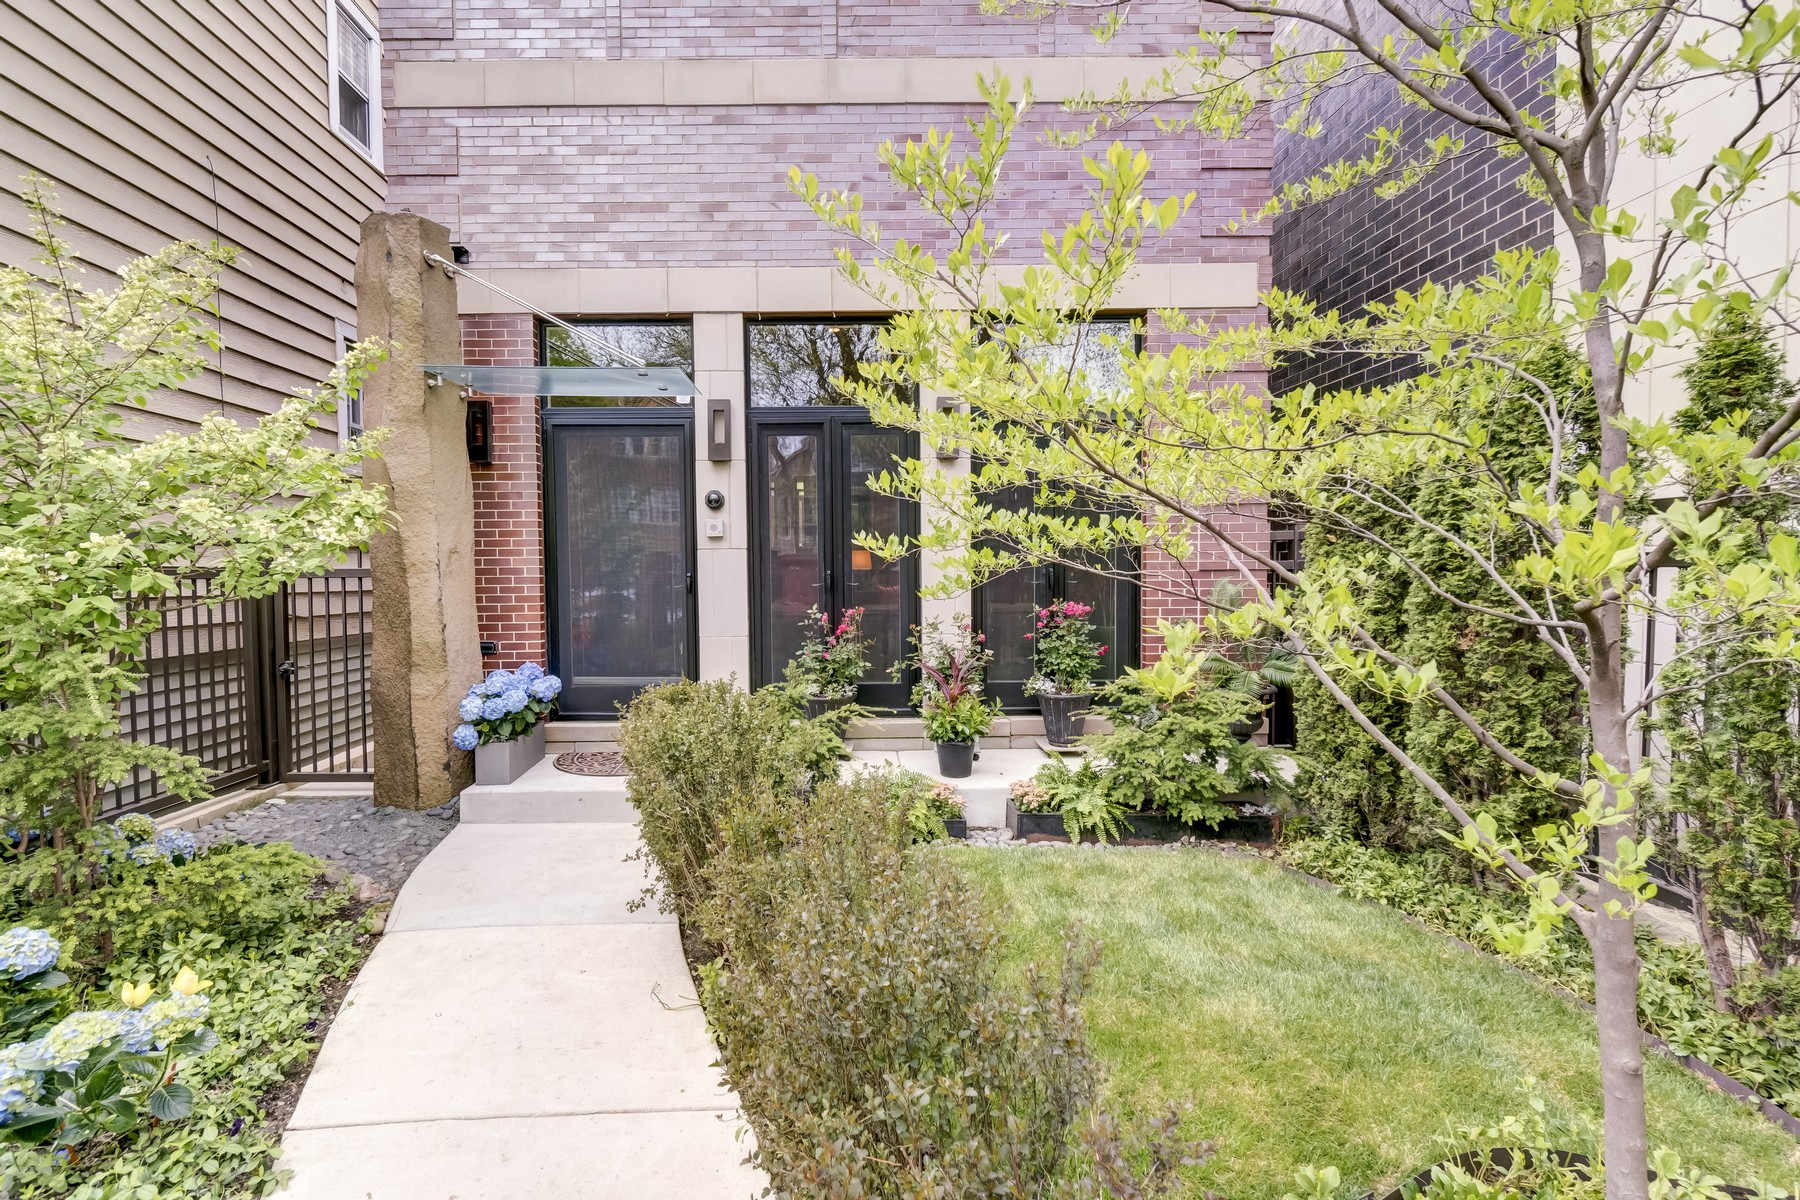 Maison unifamiliale pour l Vente à Stunning Brick and Limestone Residence 2654 N Marshfield Avenue Chicago, Illinois, 60614 États-Unis